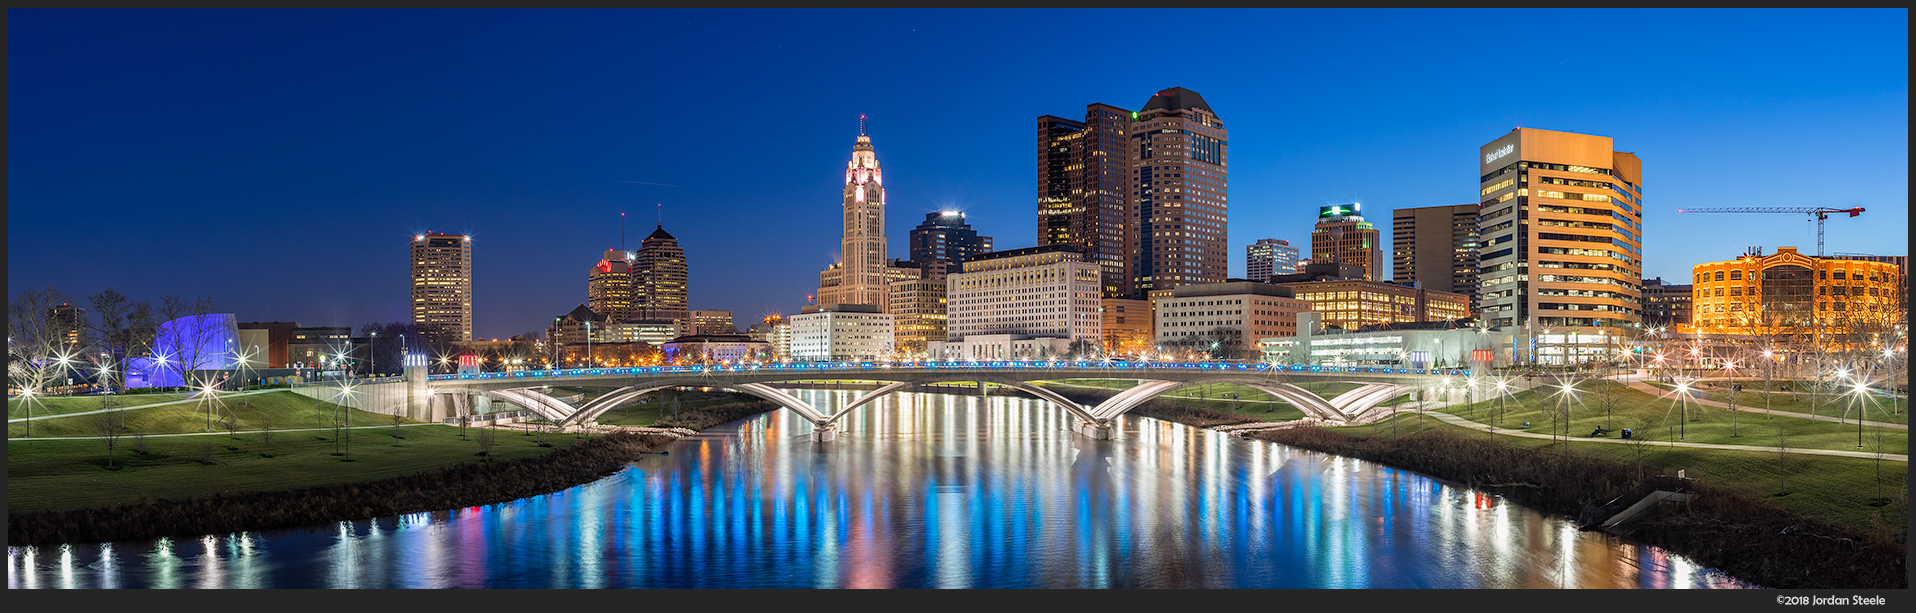 Columbus Before Dawn (3 image stitch) - Sony A7 II with Voigtländer 35mm f/1.4 Nokton Classic @ f/11